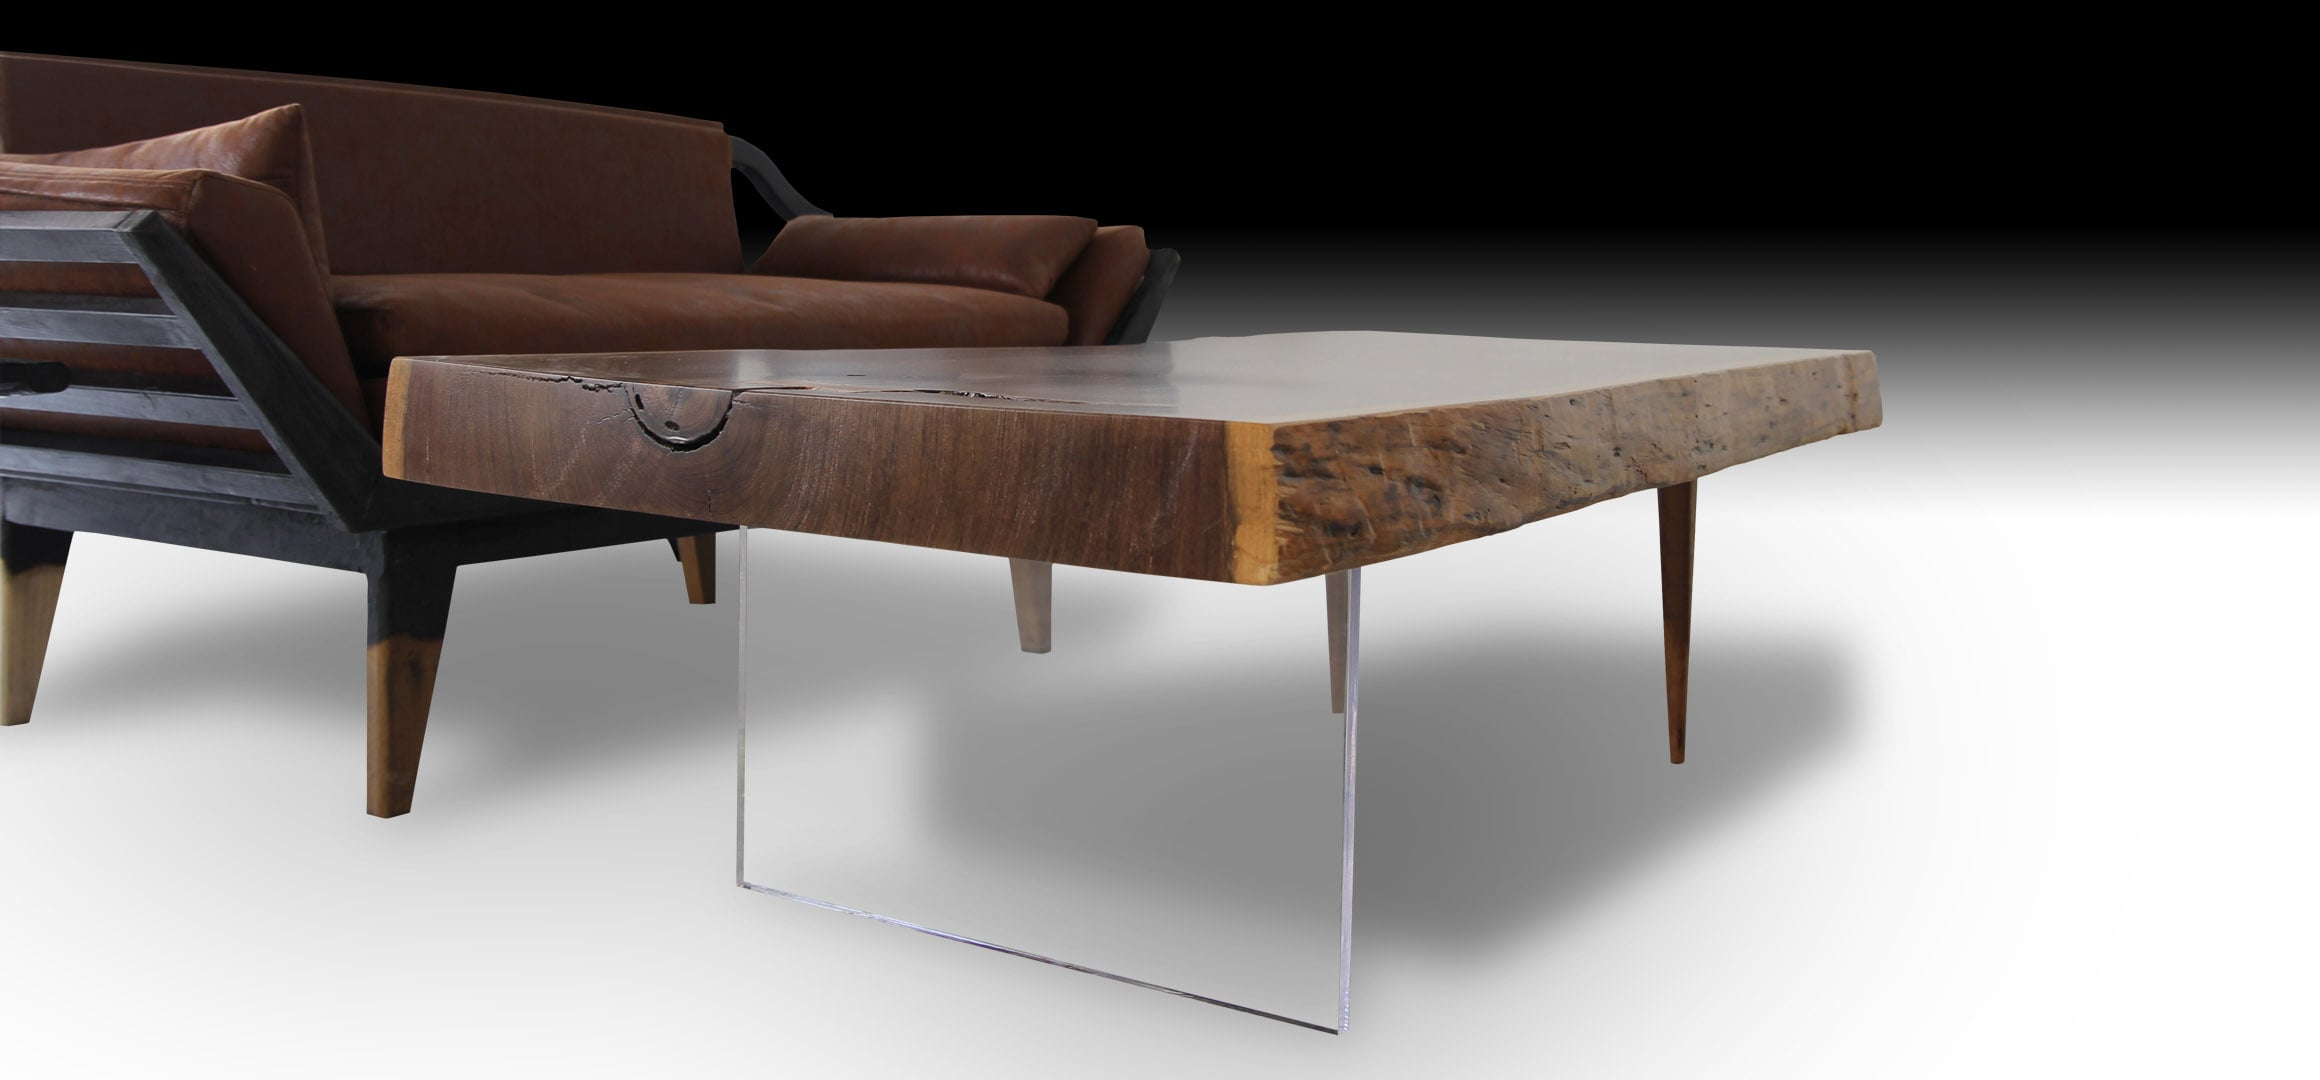 Animal live edge walnut wood coffee table next to a wooden sofa